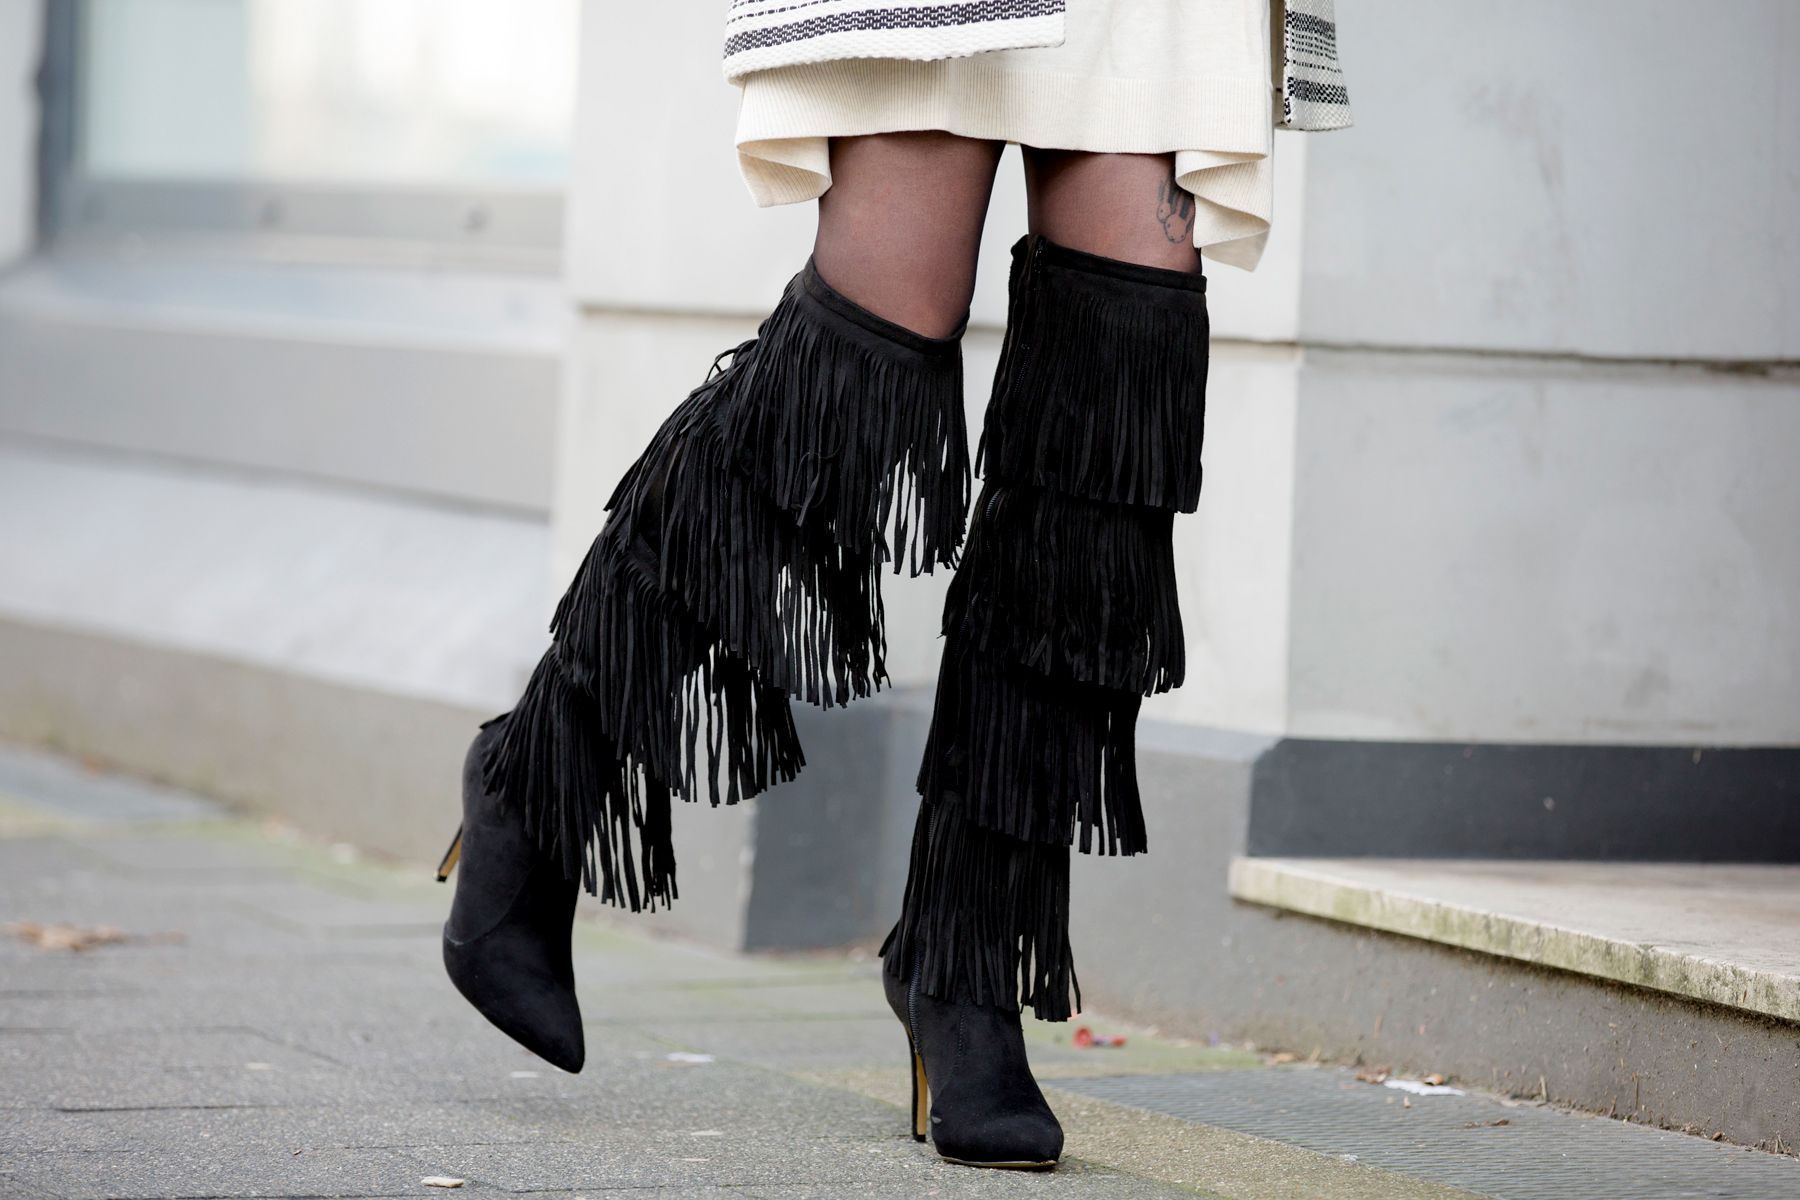 fringed overknee boots sacha lampshading stripes francaise cute parisienne red lips ysl proenza schouler luxury fashion blogger dusseldorf berlin germany 3